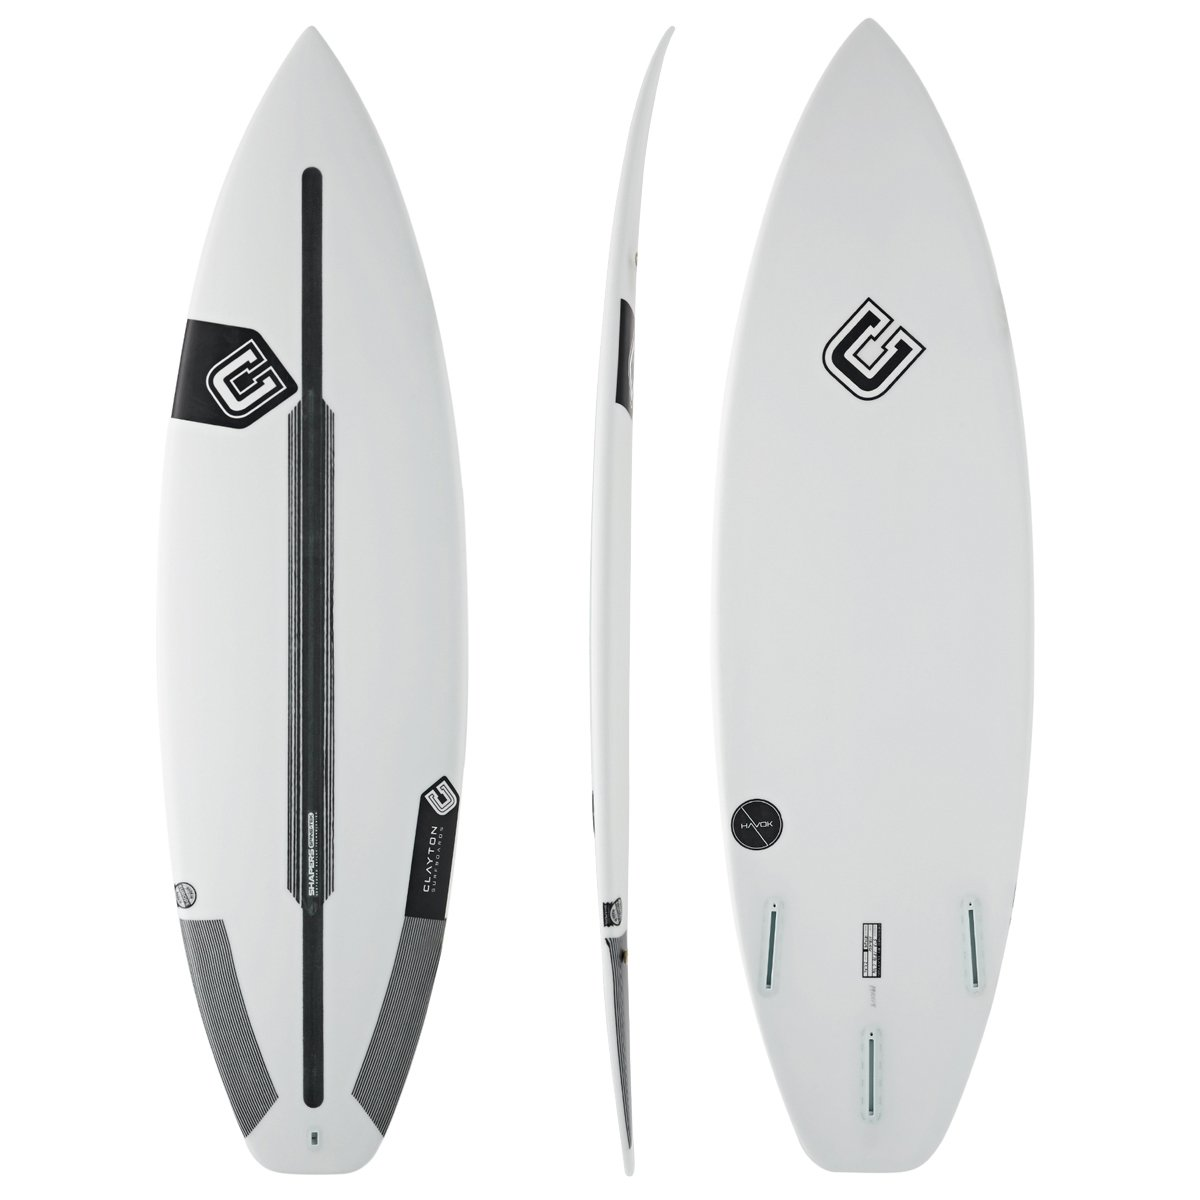 clayton-spinetek-epoxy-surfboards-havoc-1